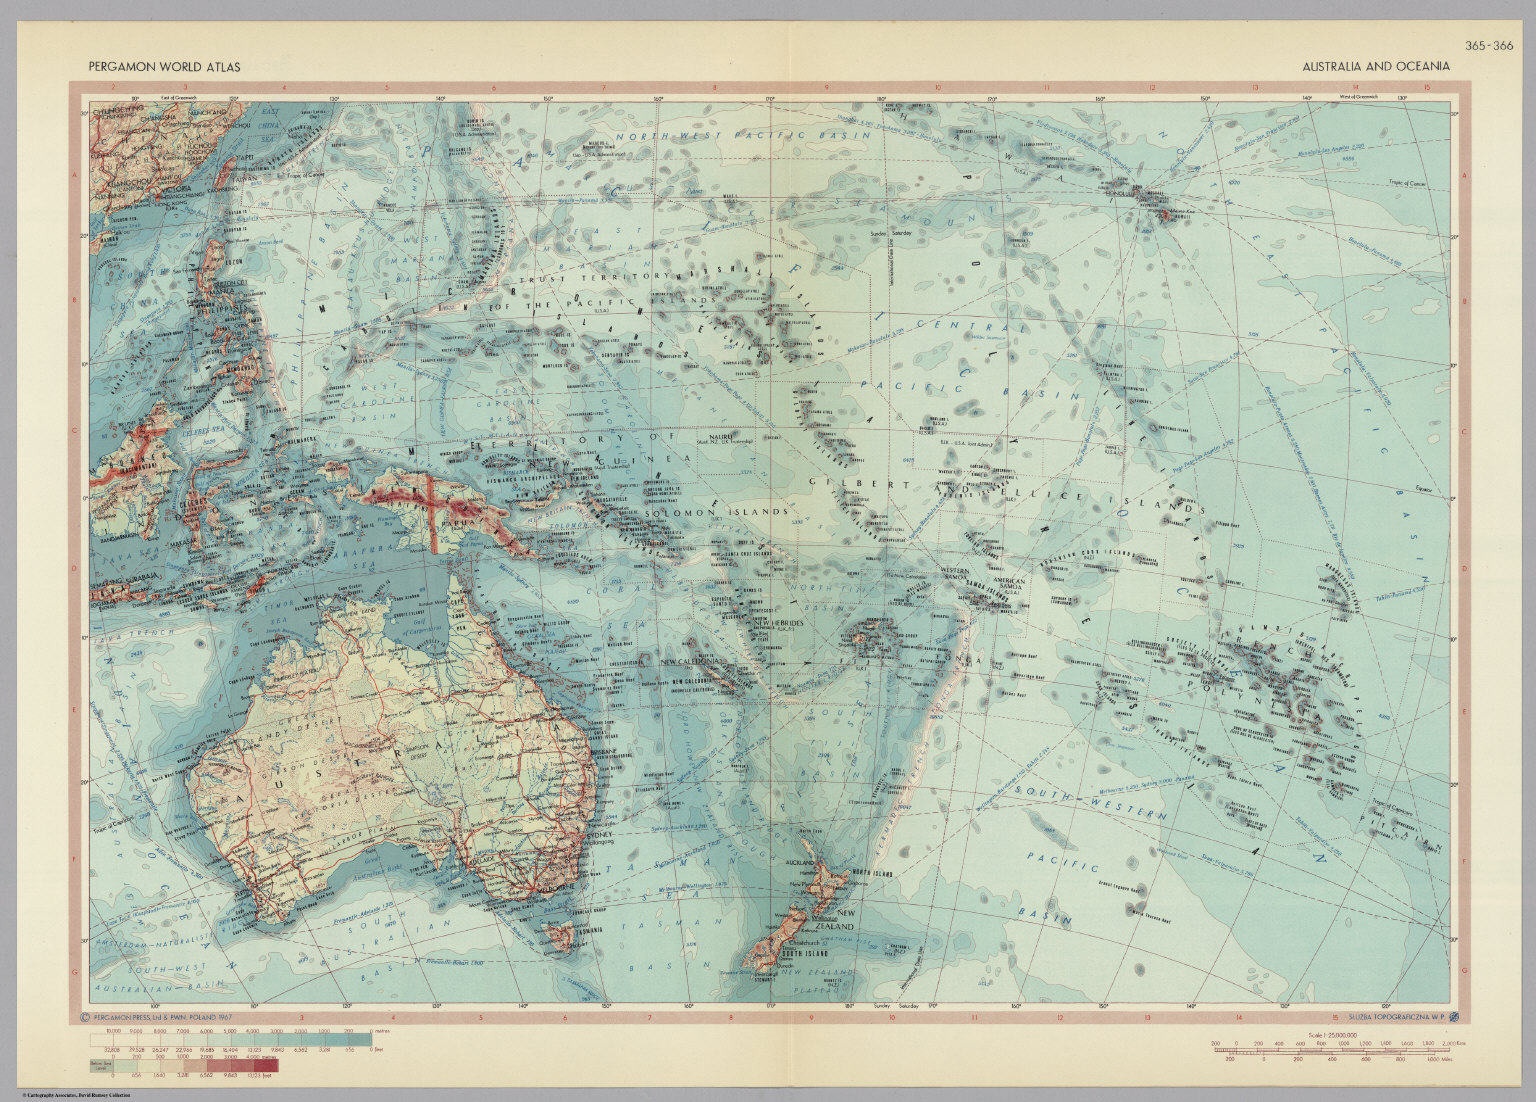 Australia and oceania pergamon world atlas david rumsey australia and oceania pergamon world atlas freerunsca Image collections